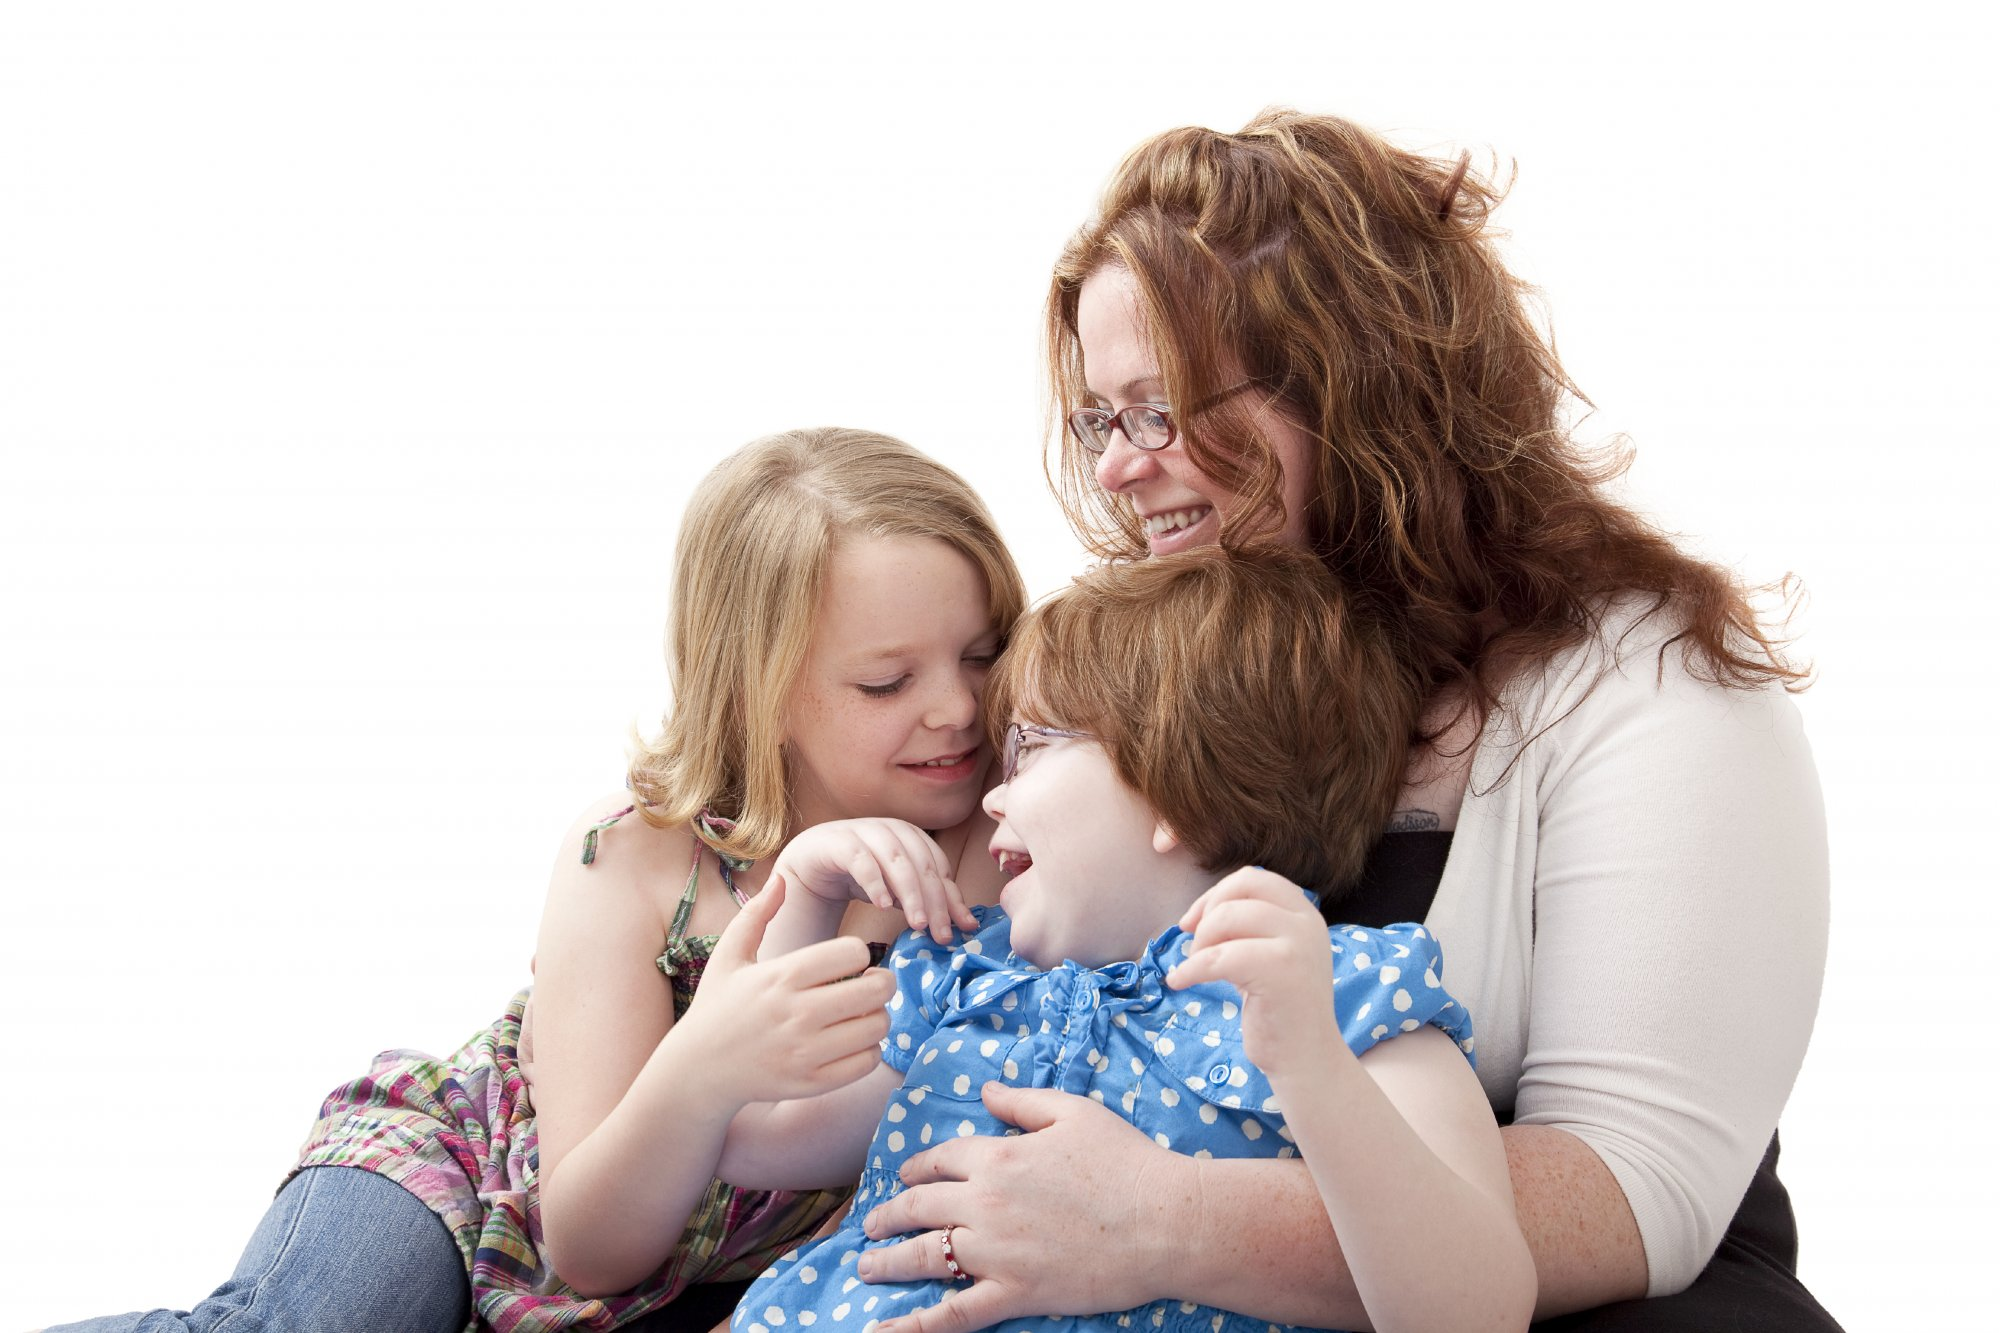 Boy with shoulder dystocia sitting with his sister, mom | Erb's palsy lawyers NJ, NY